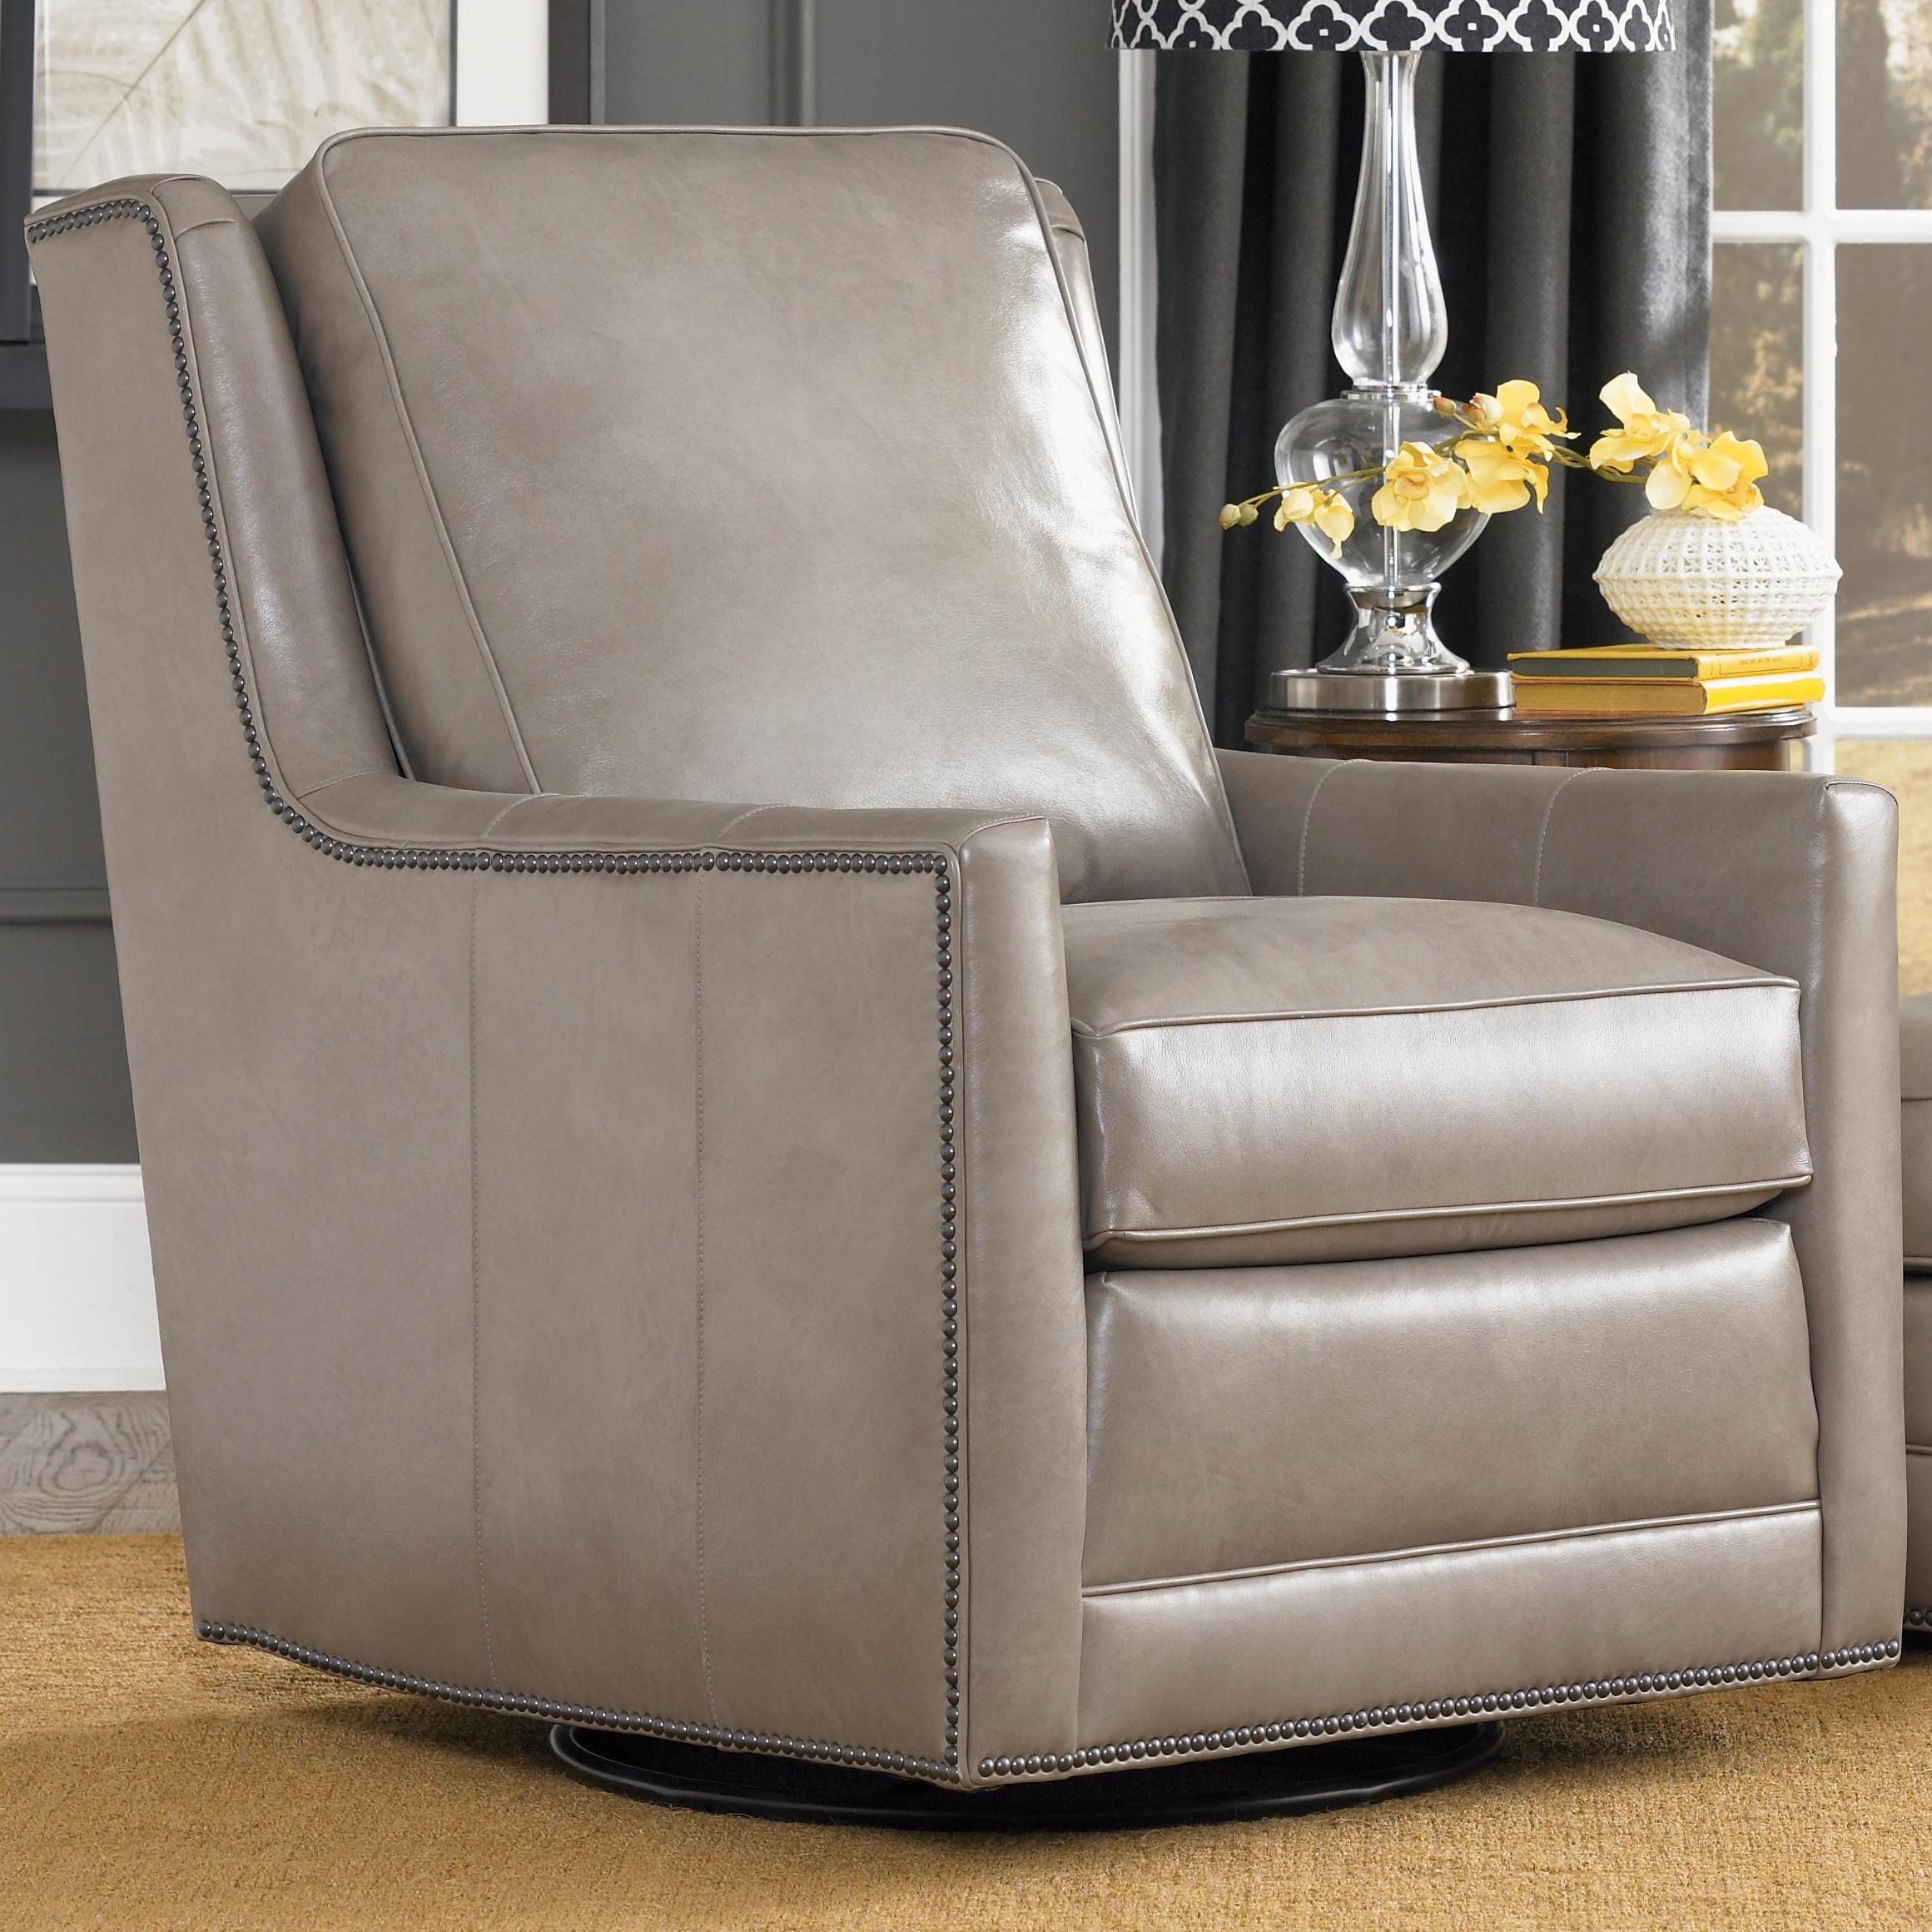 Transitional Swivel Chair With Nailhead Trim